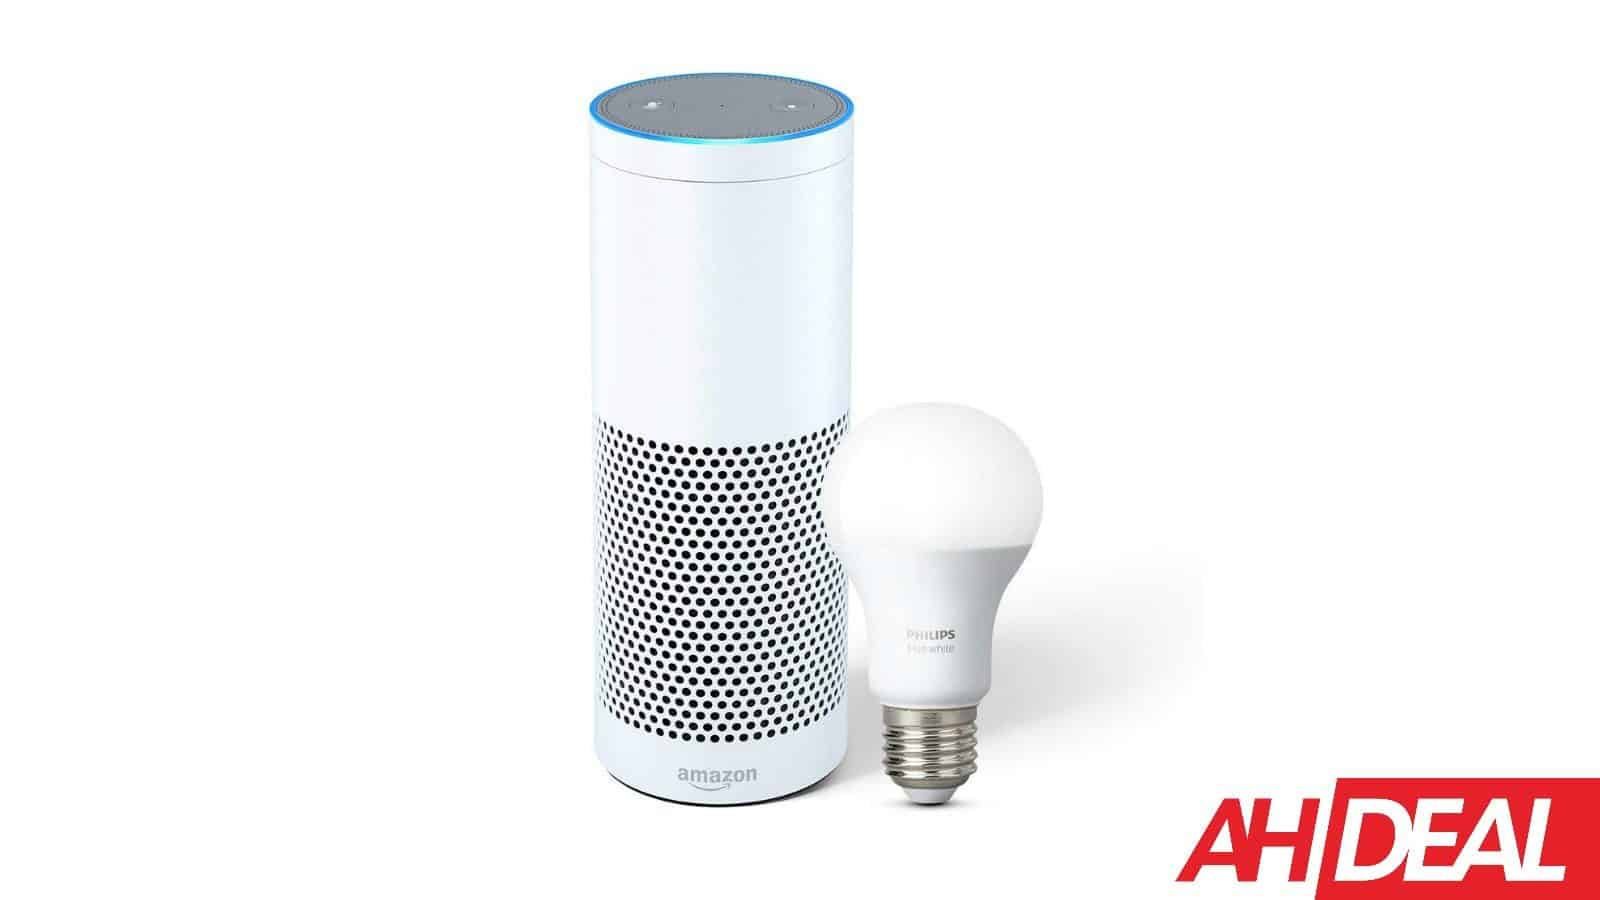 deal amazon echo plus philips hue bulb for 99 september 2018 android news. Black Bedroom Furniture Sets. Home Design Ideas